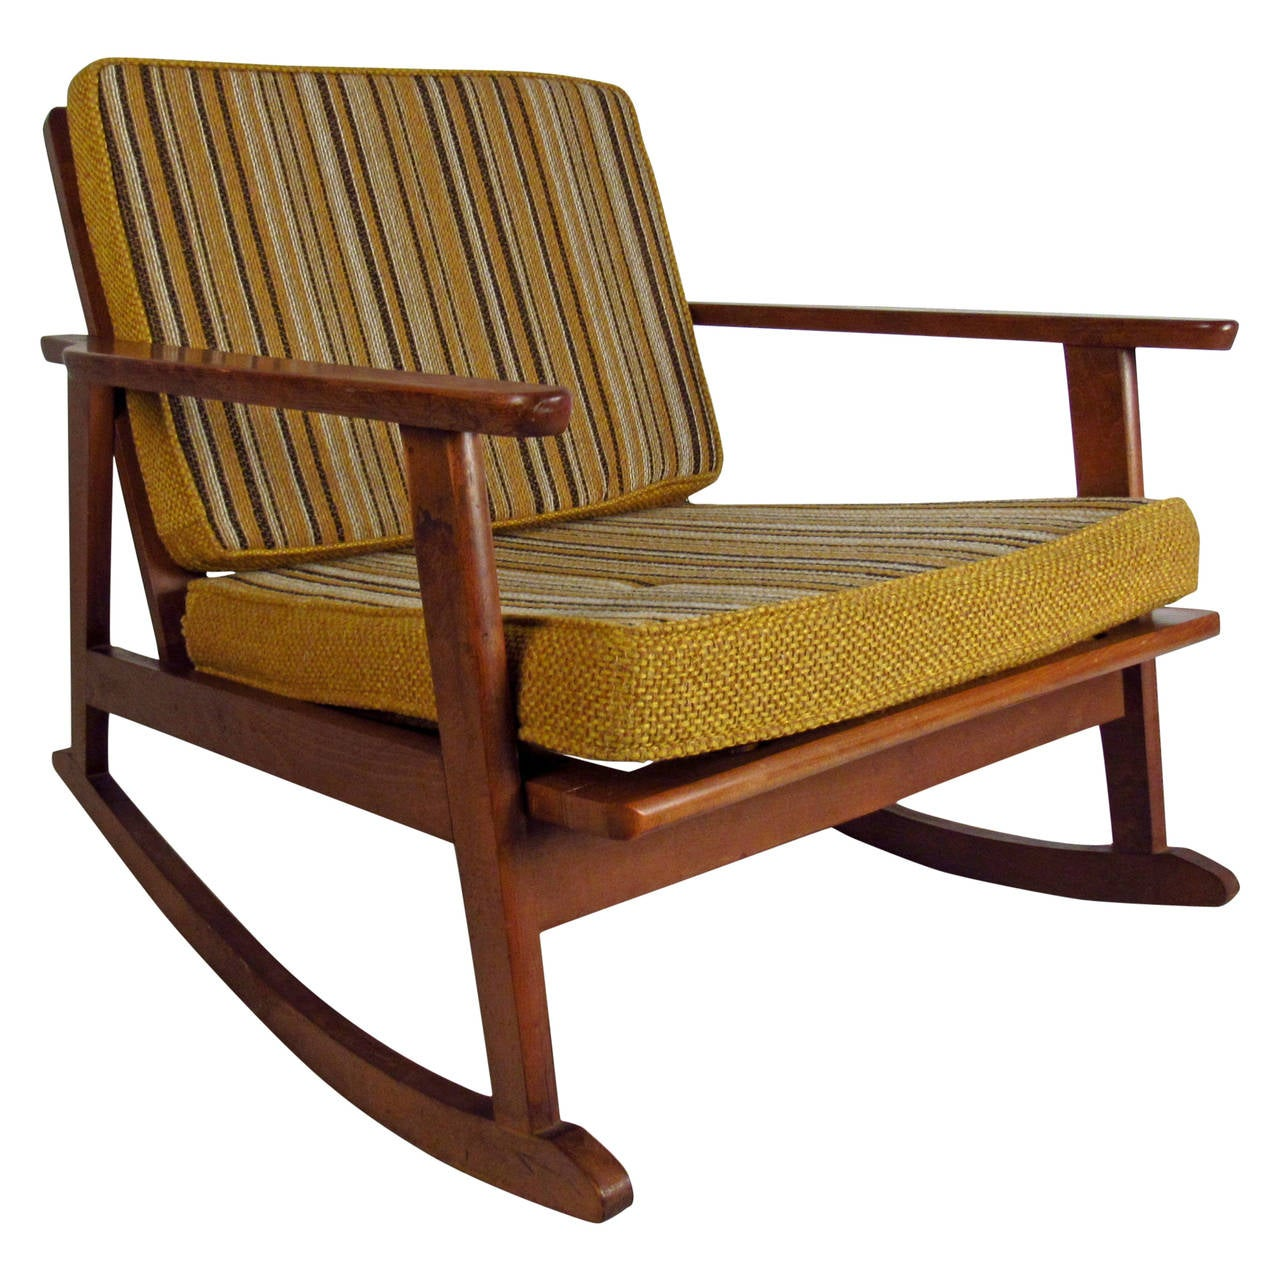 mid century rocker chair shower transfer bench modern walnut with striped cushions at